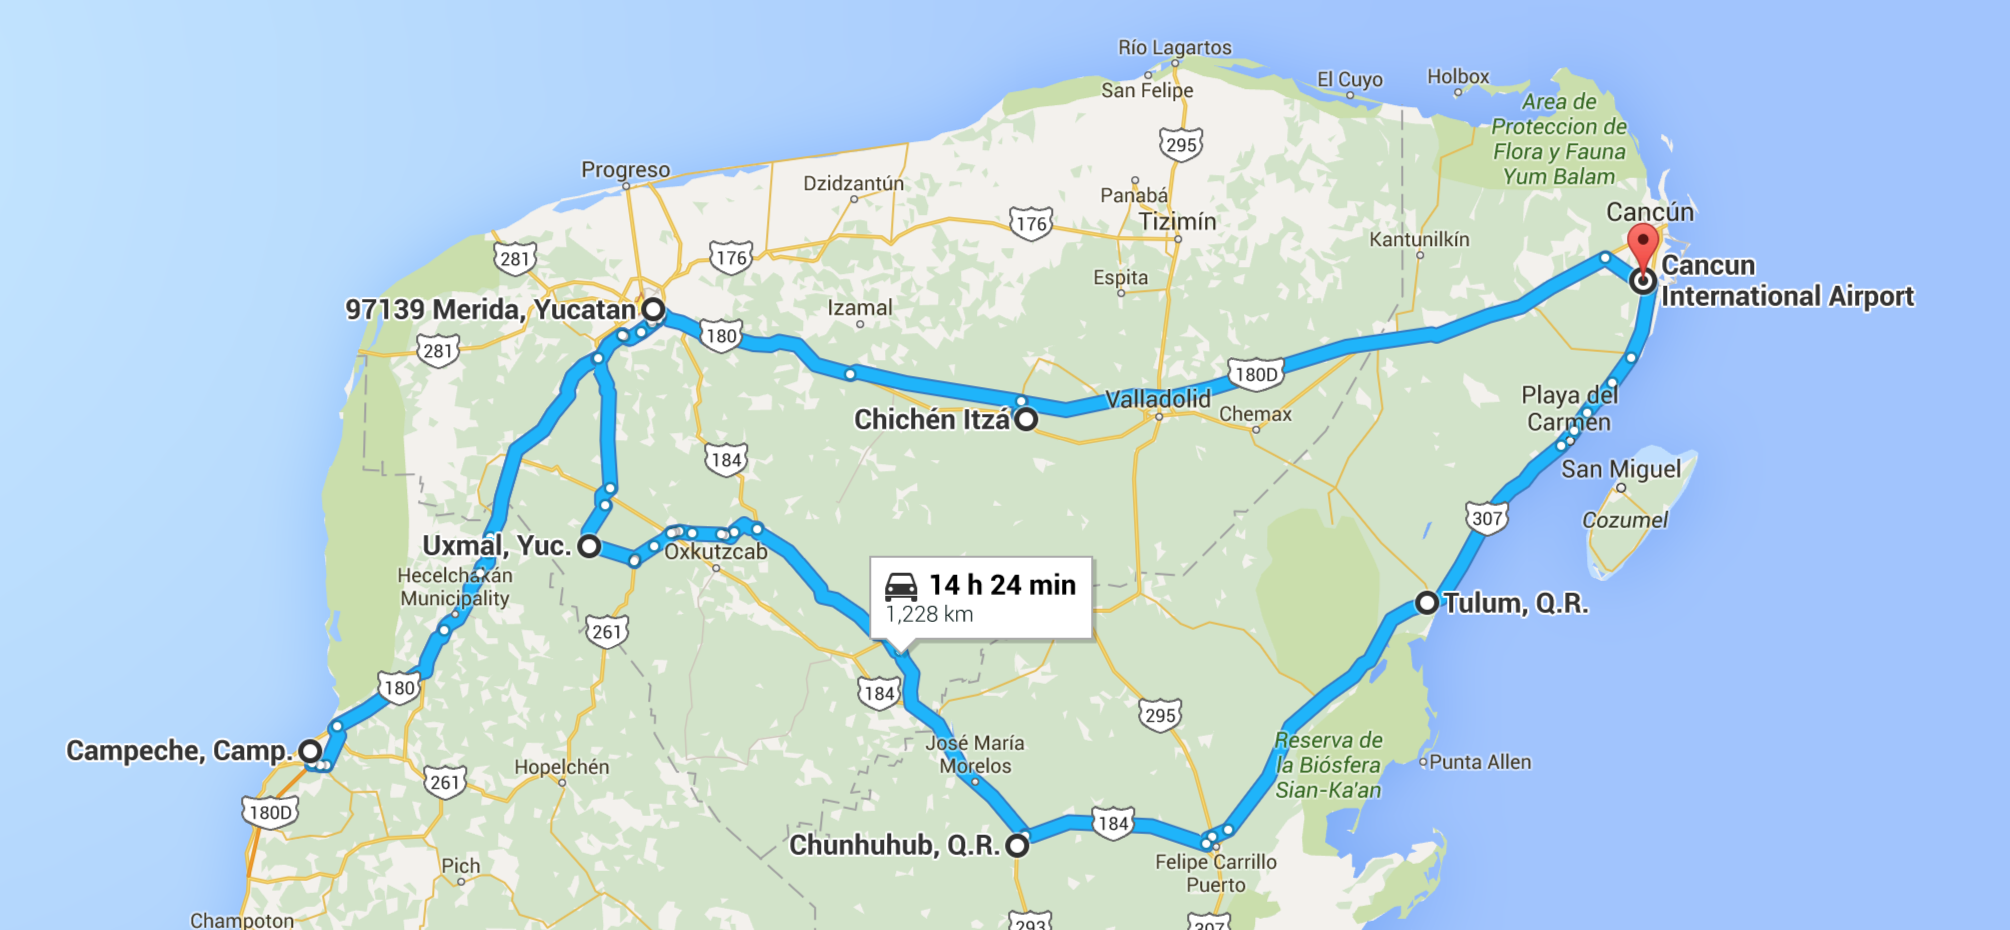 Our route through the Yucatan. Note that while we flew in/out of Cancun, we did not stay there.